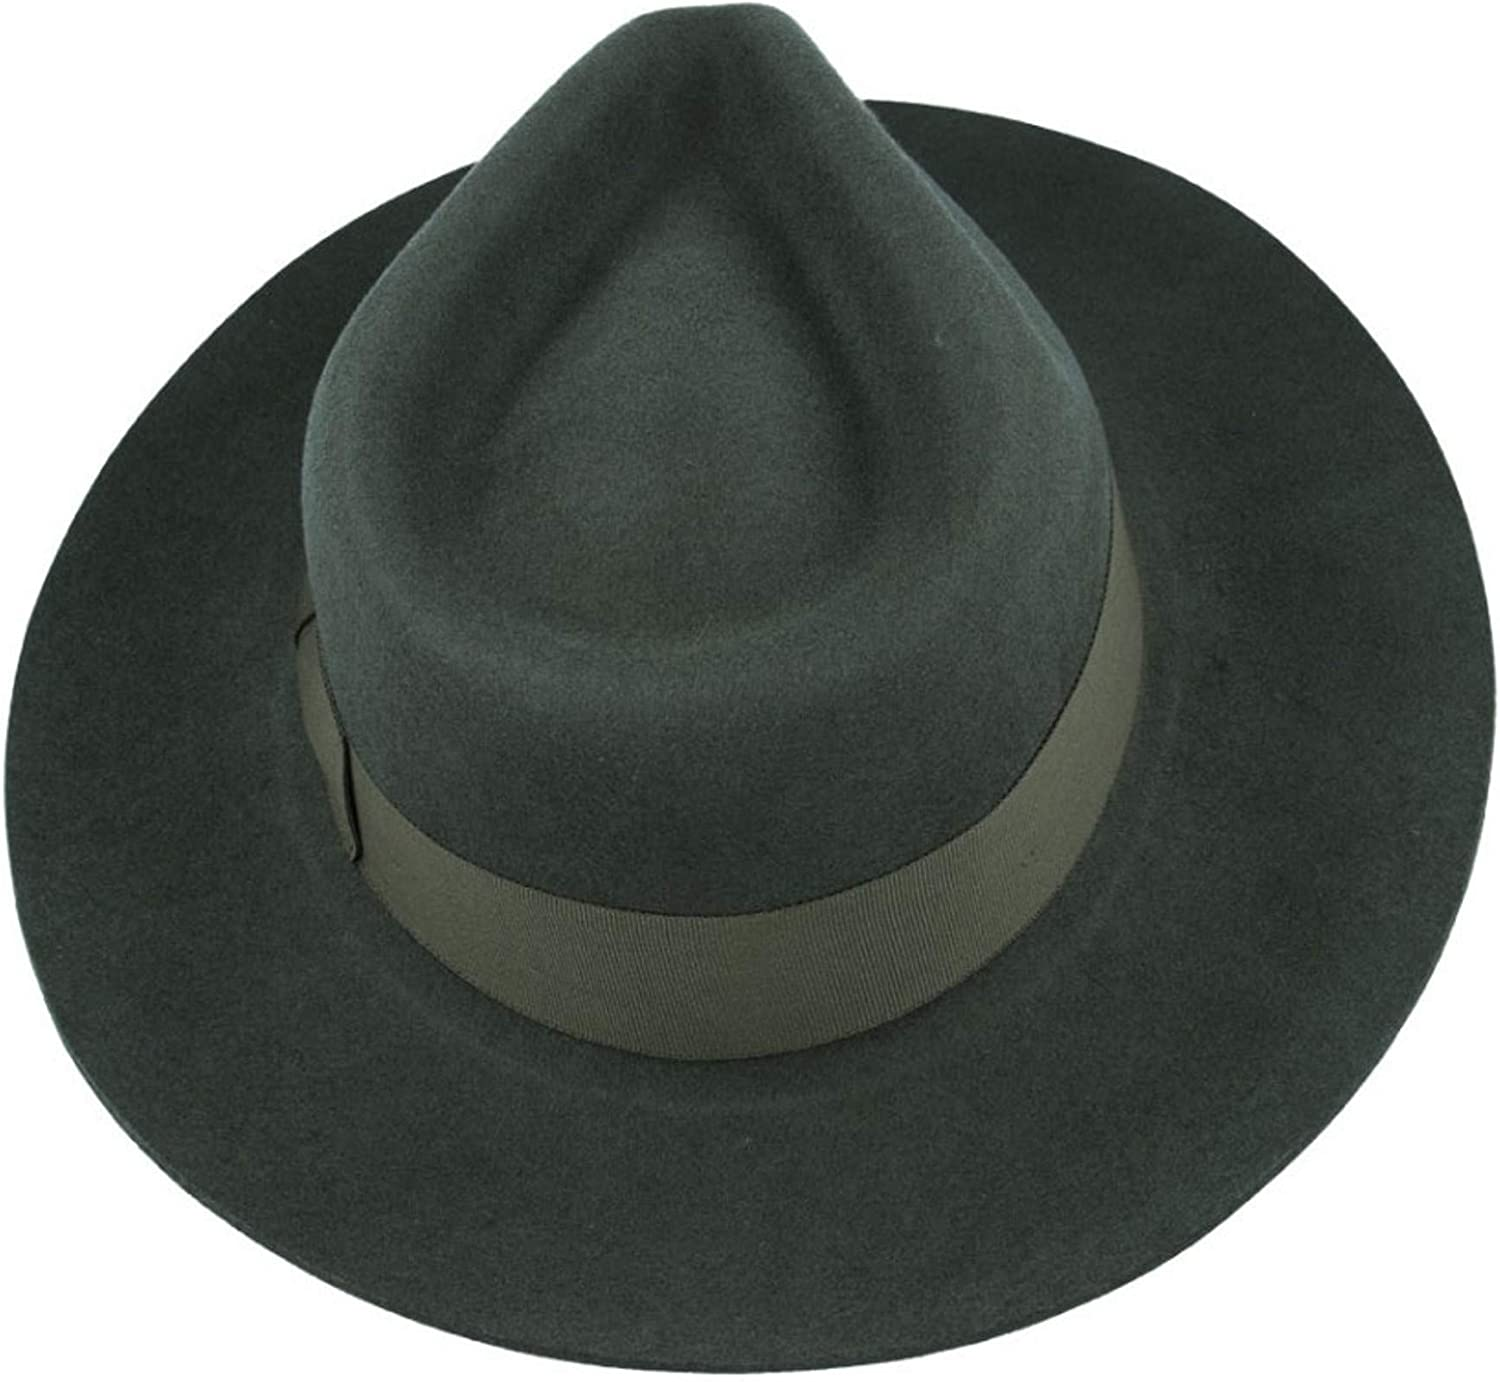 Gladwinbond Quality Hand Made Stiff /& Snap Brim Fedora Trilby Hat with Matching Band 100/% Wool